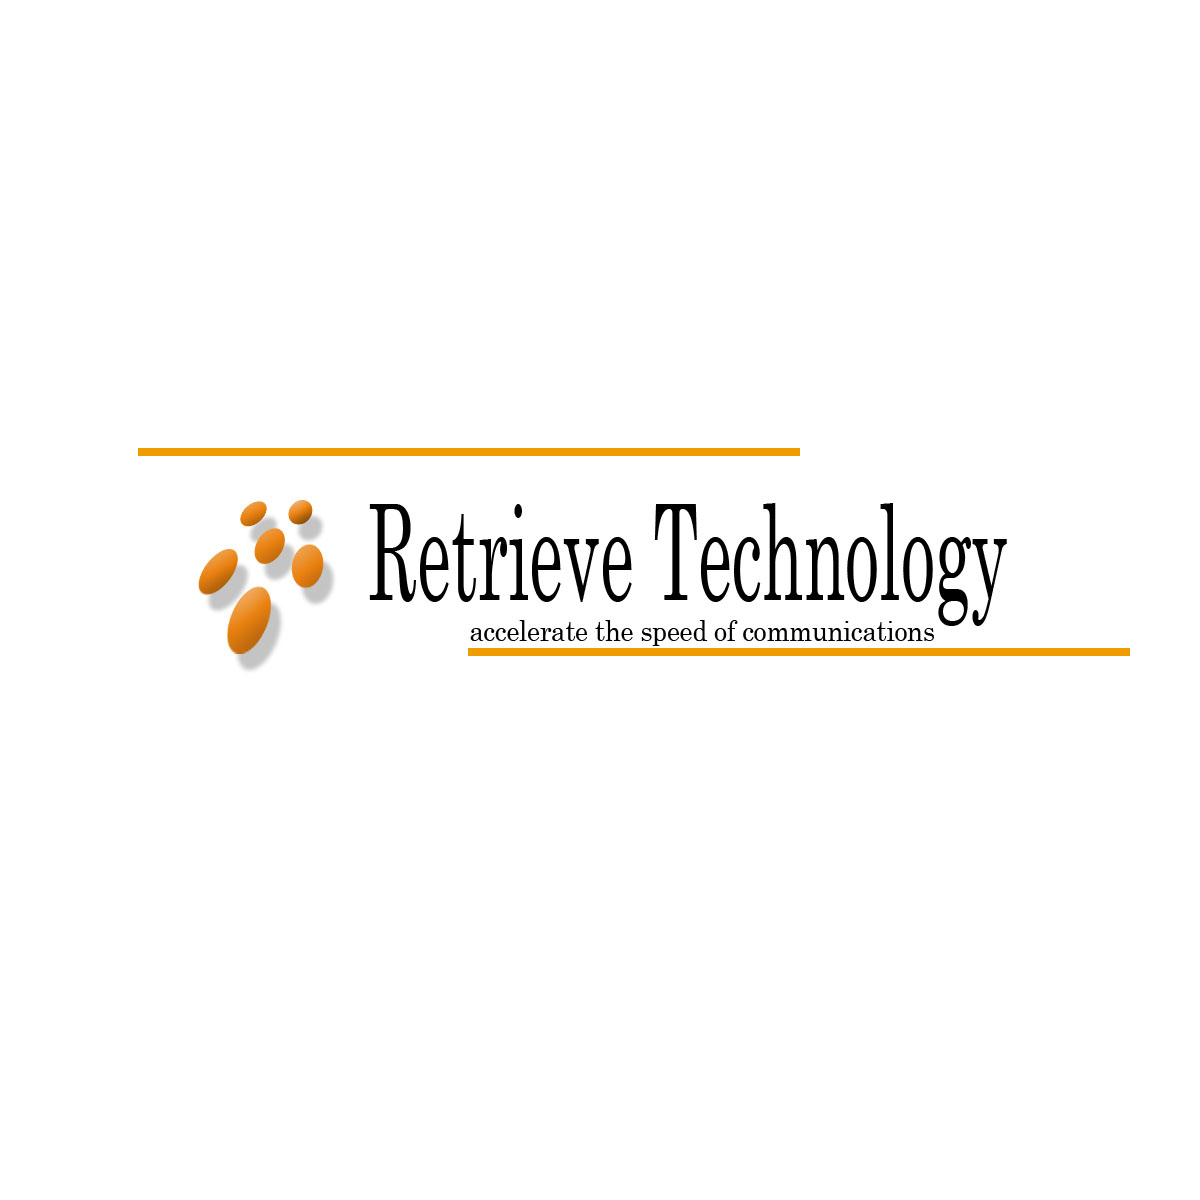 Logo Design by Moag - Entry No. 72 in the Logo Design Contest Artistic Logo Design for Retrieve Technologies.